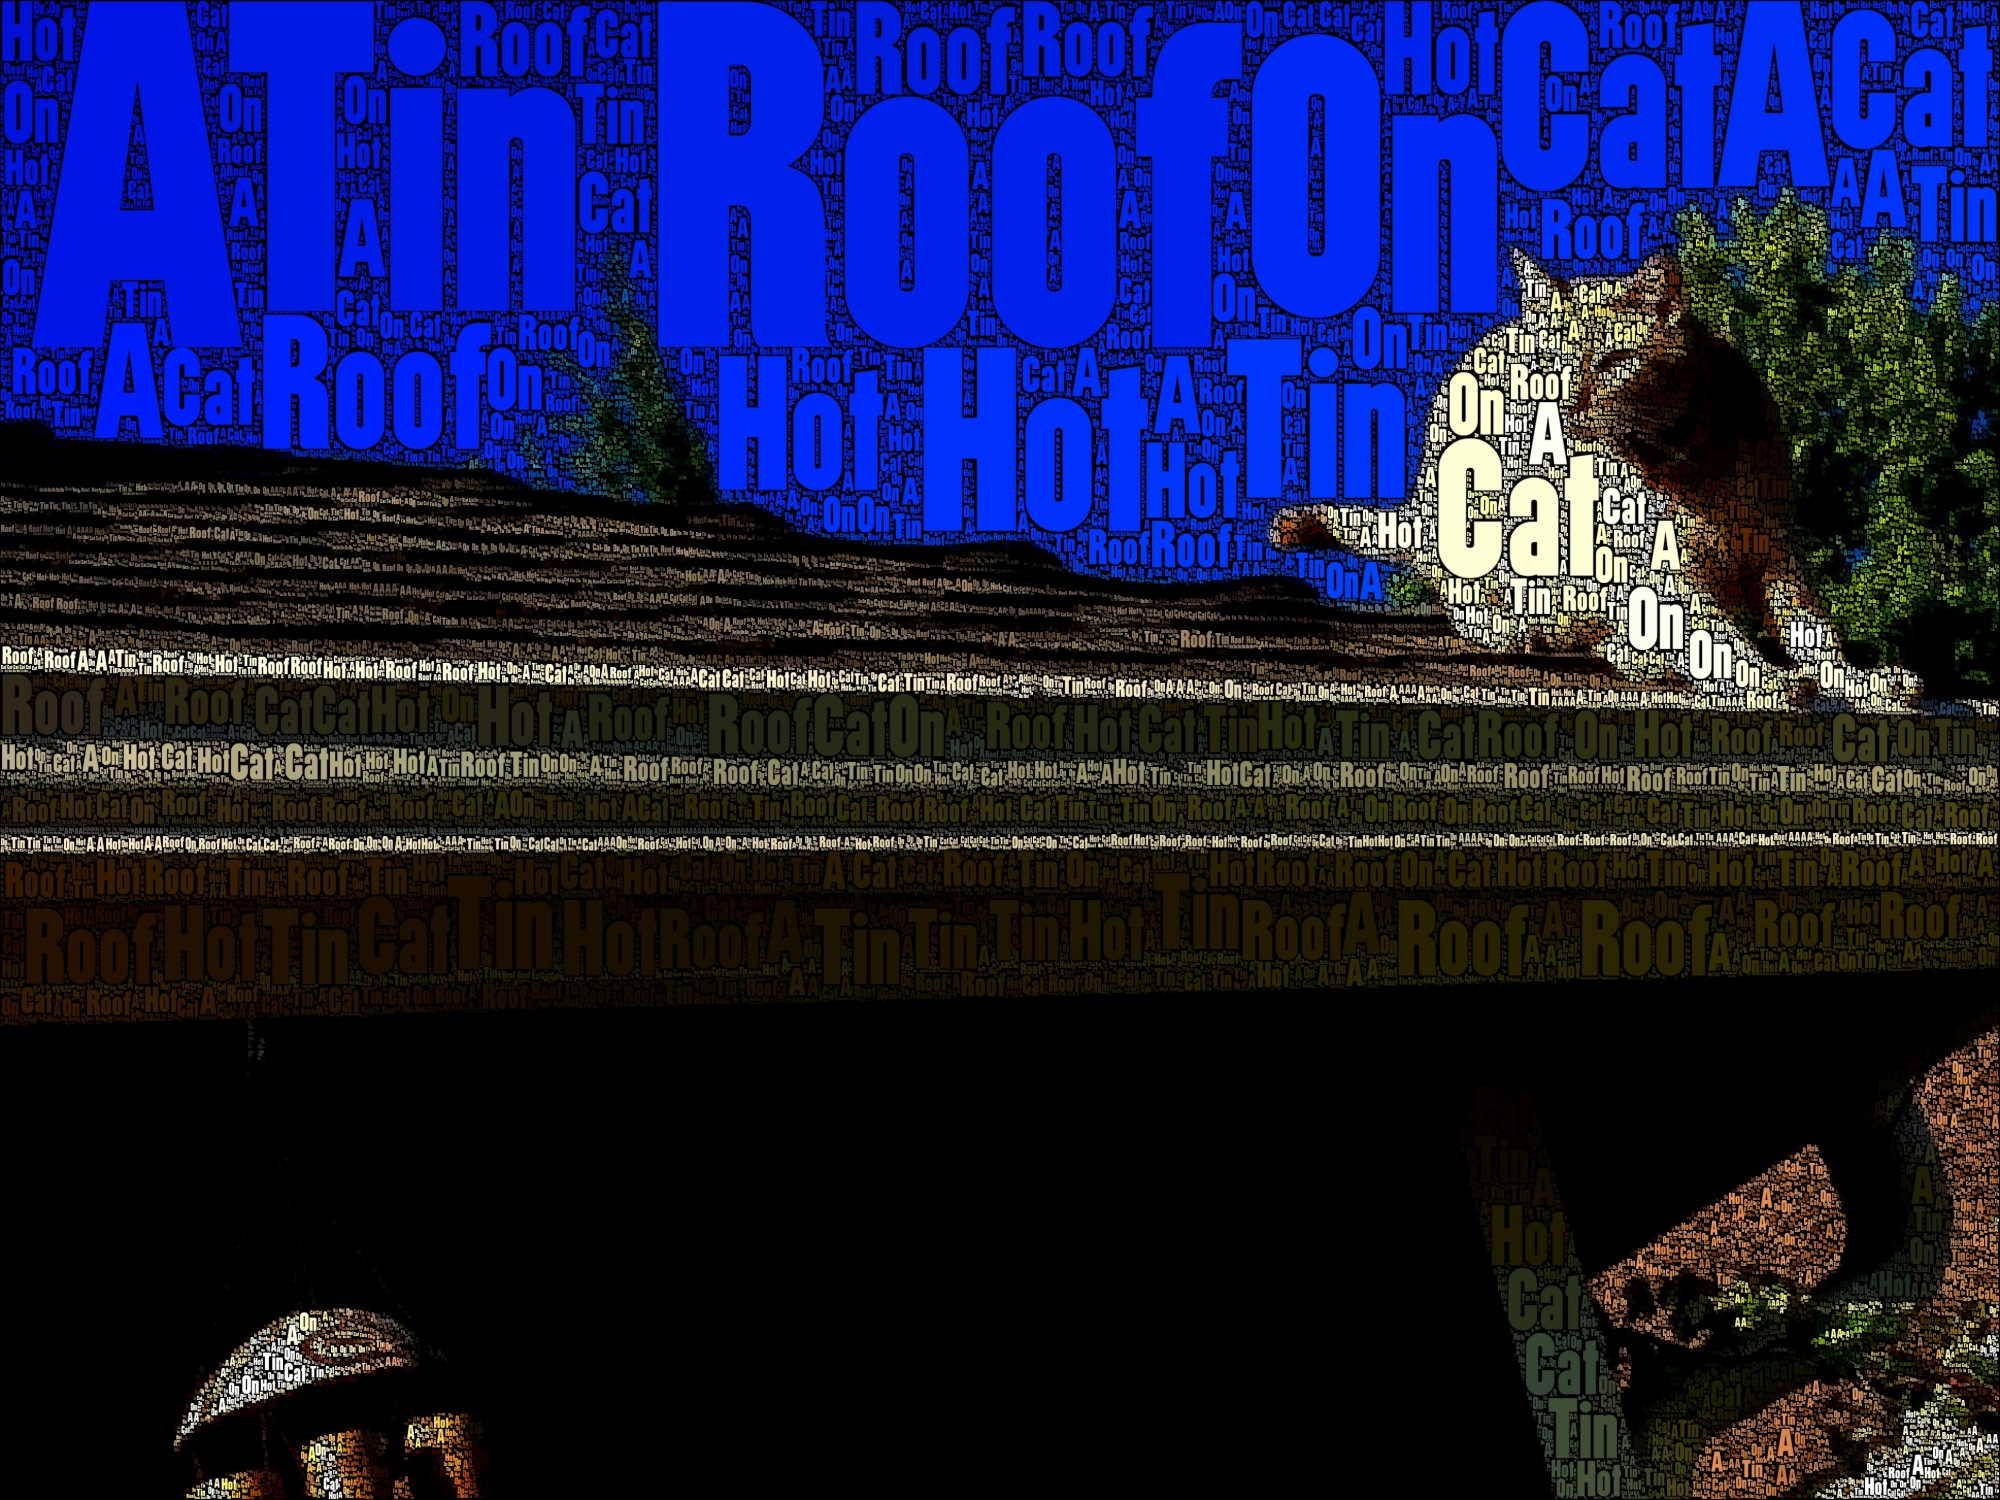 Cat On A Hot Tin Roof Raja